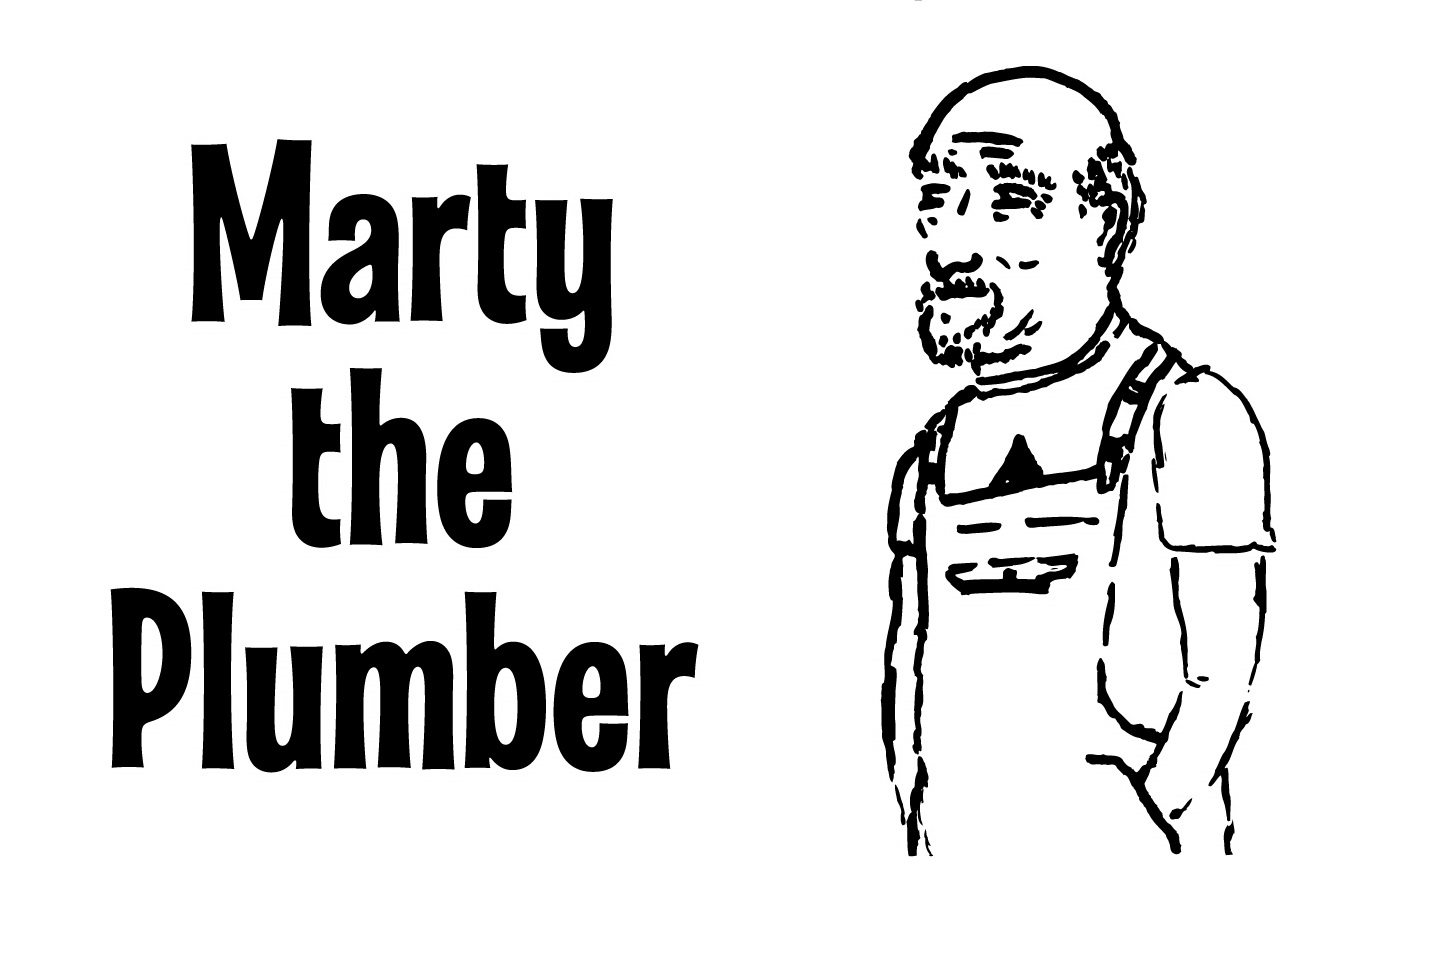 Marty-the-Plumber revised for sponsor